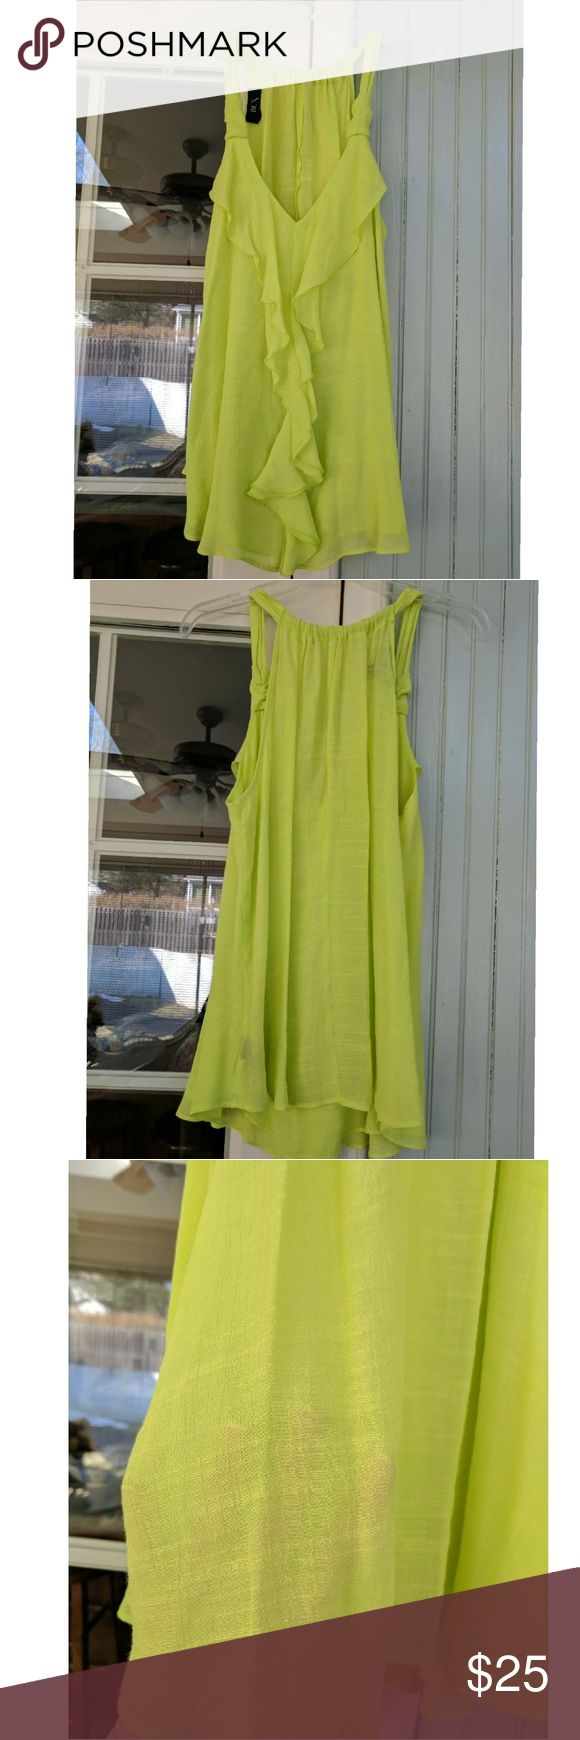 Sleeveless Ruffle Shirt Neon Yellow/Green cascading ruffle front tank by a company called BCX.  Rayon Polyester Blend. Size XL. Lined Front. Single layer back slightly transparent. Top of back has adjustable width- fabric can be sprunched or pulled apart along the straps. Like new. Worn once. BCX Tops Tank Tops